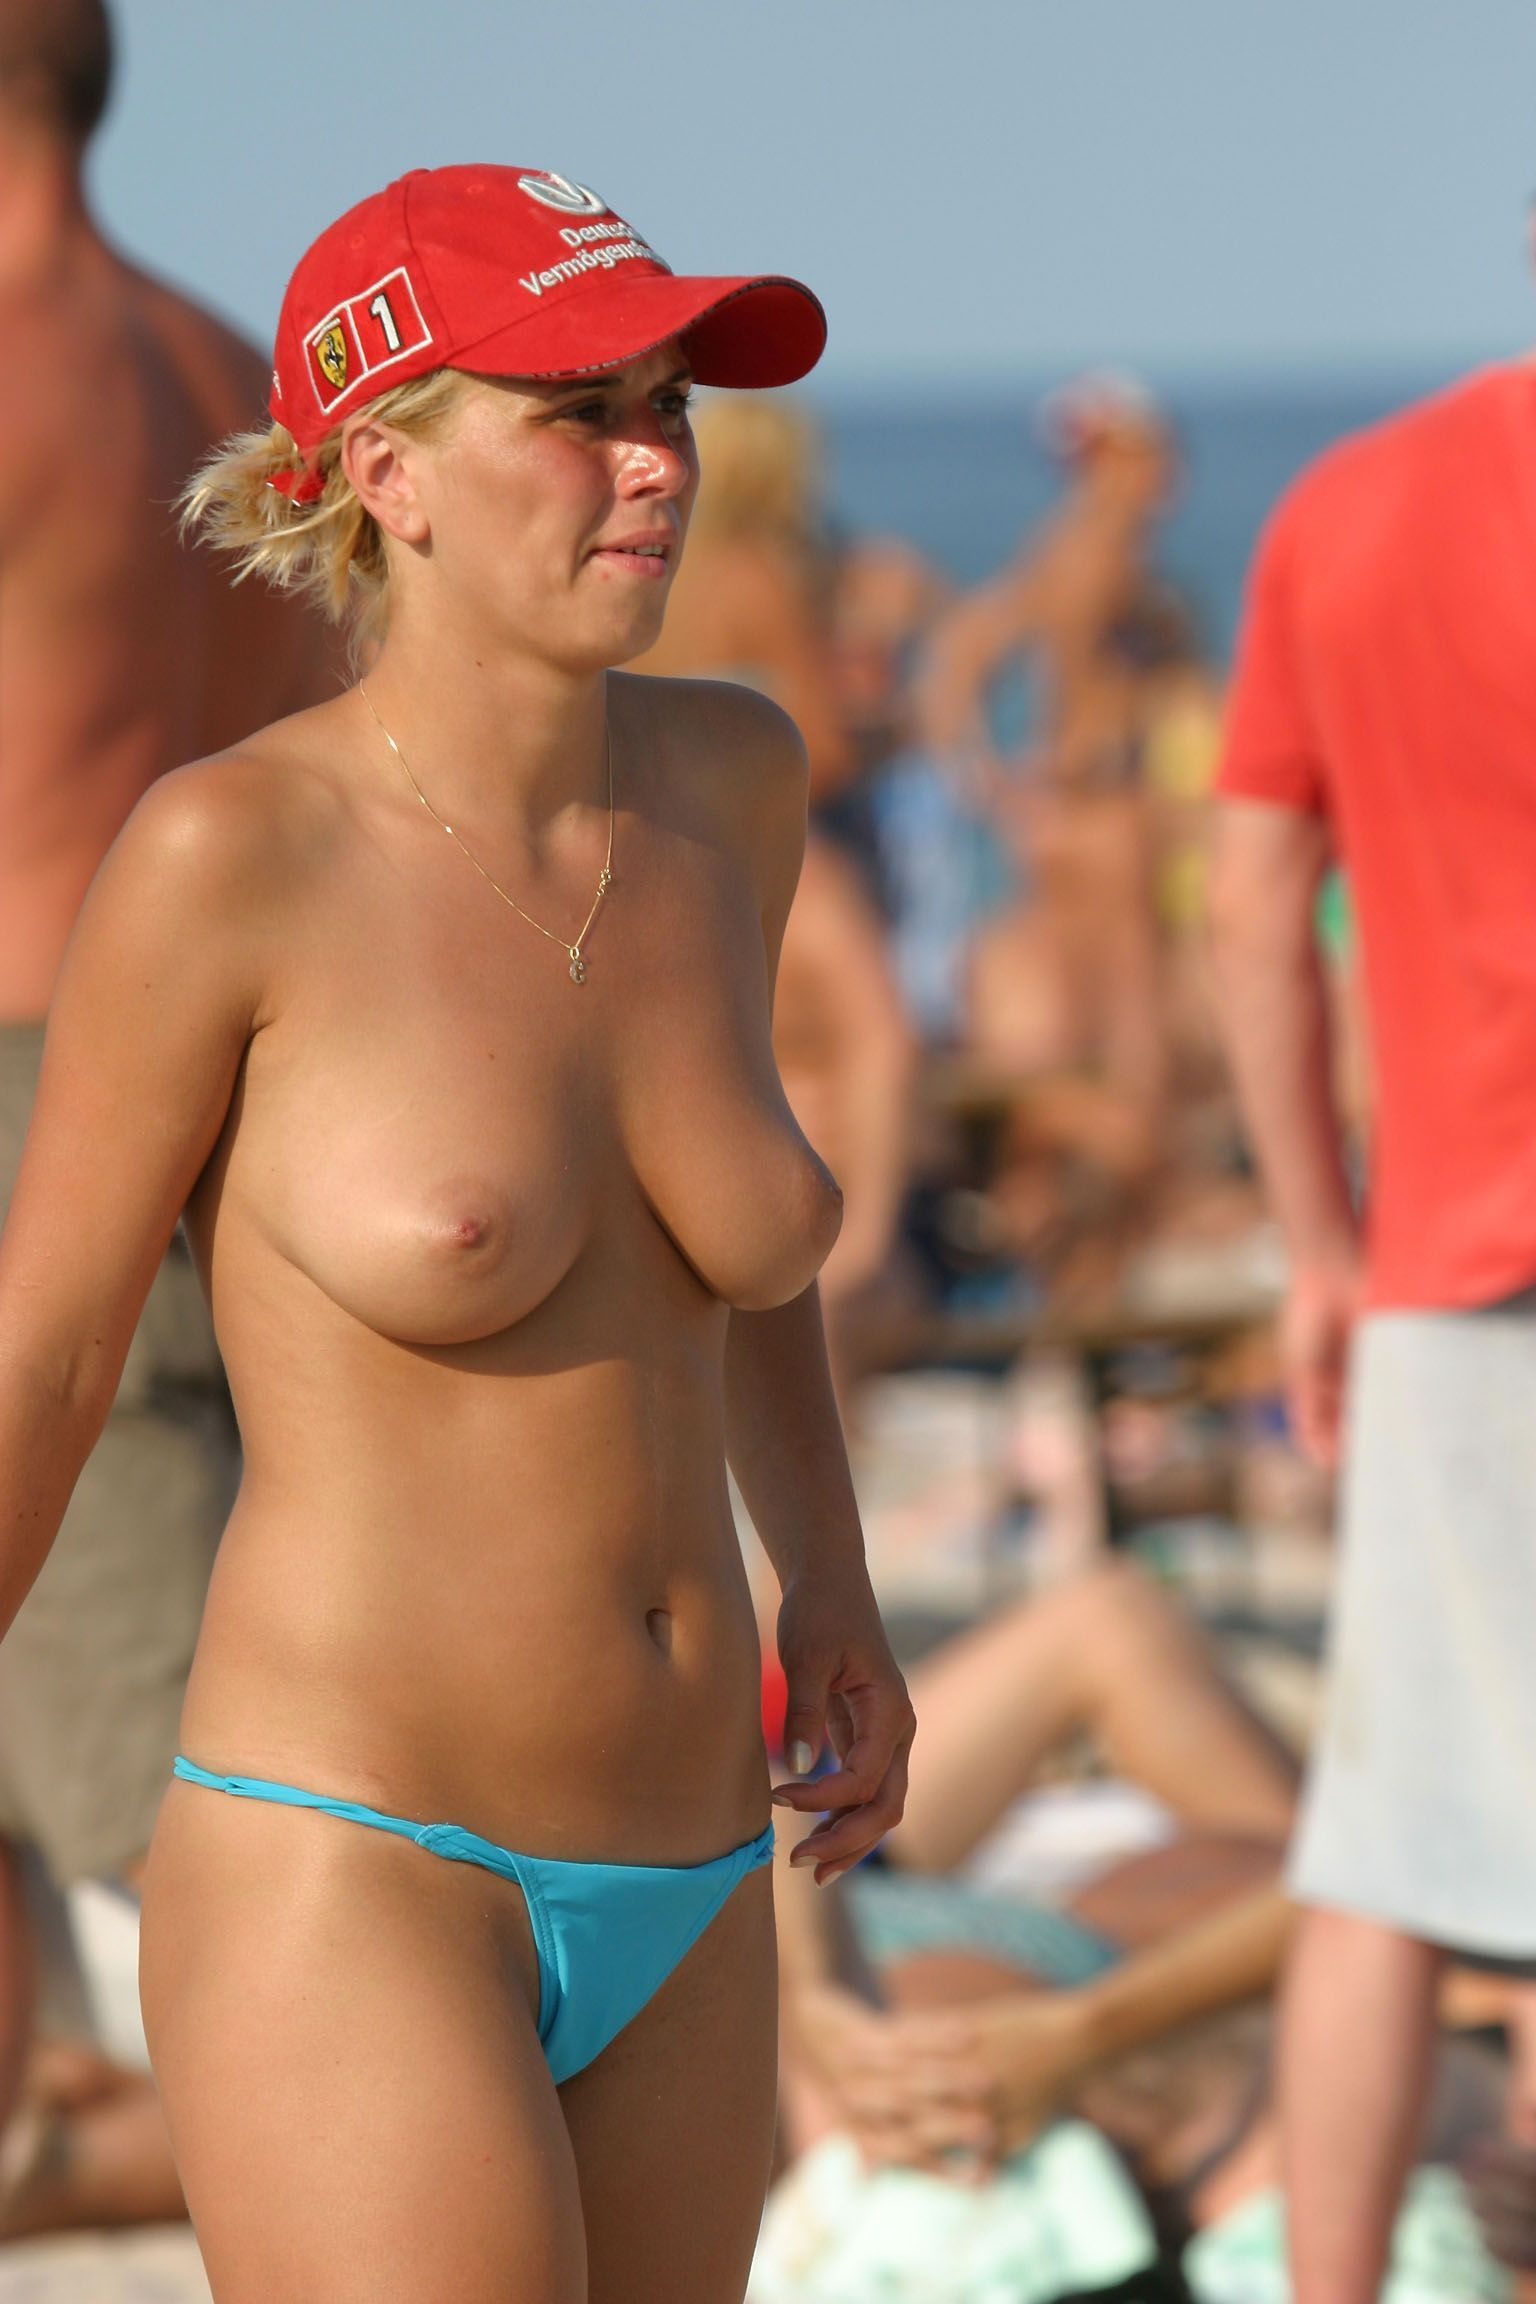 Topless babe show us her red hat